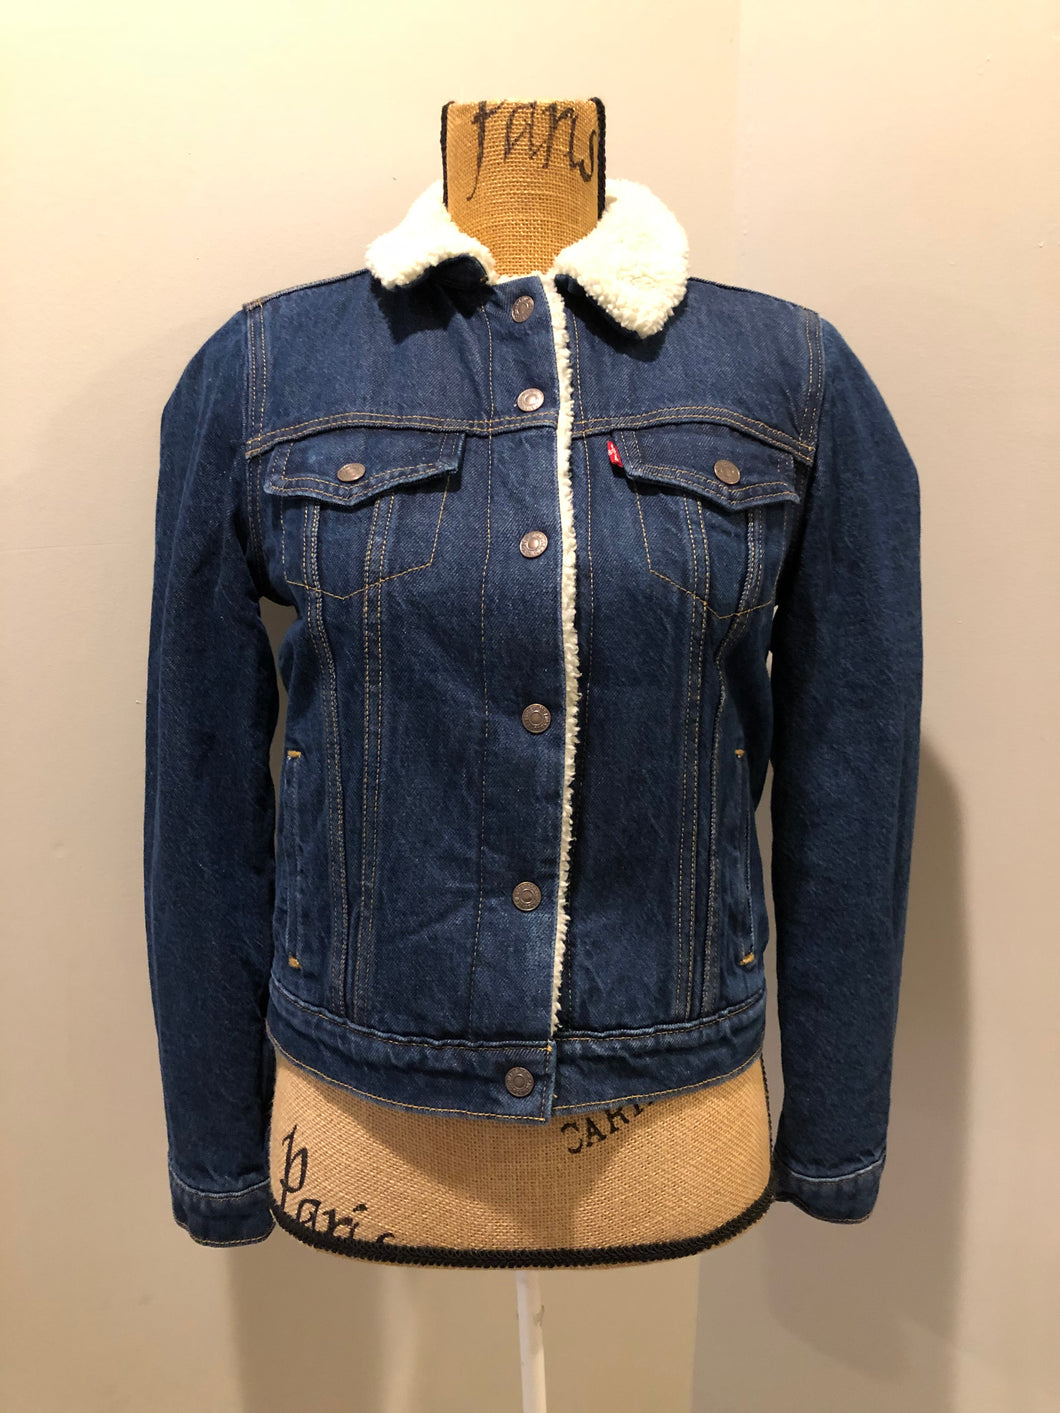 Levi's denim sherpa trucker jacket in a medium wash with faux fur lining, snap closures, vertical pockets and two flap pockets. Size small.